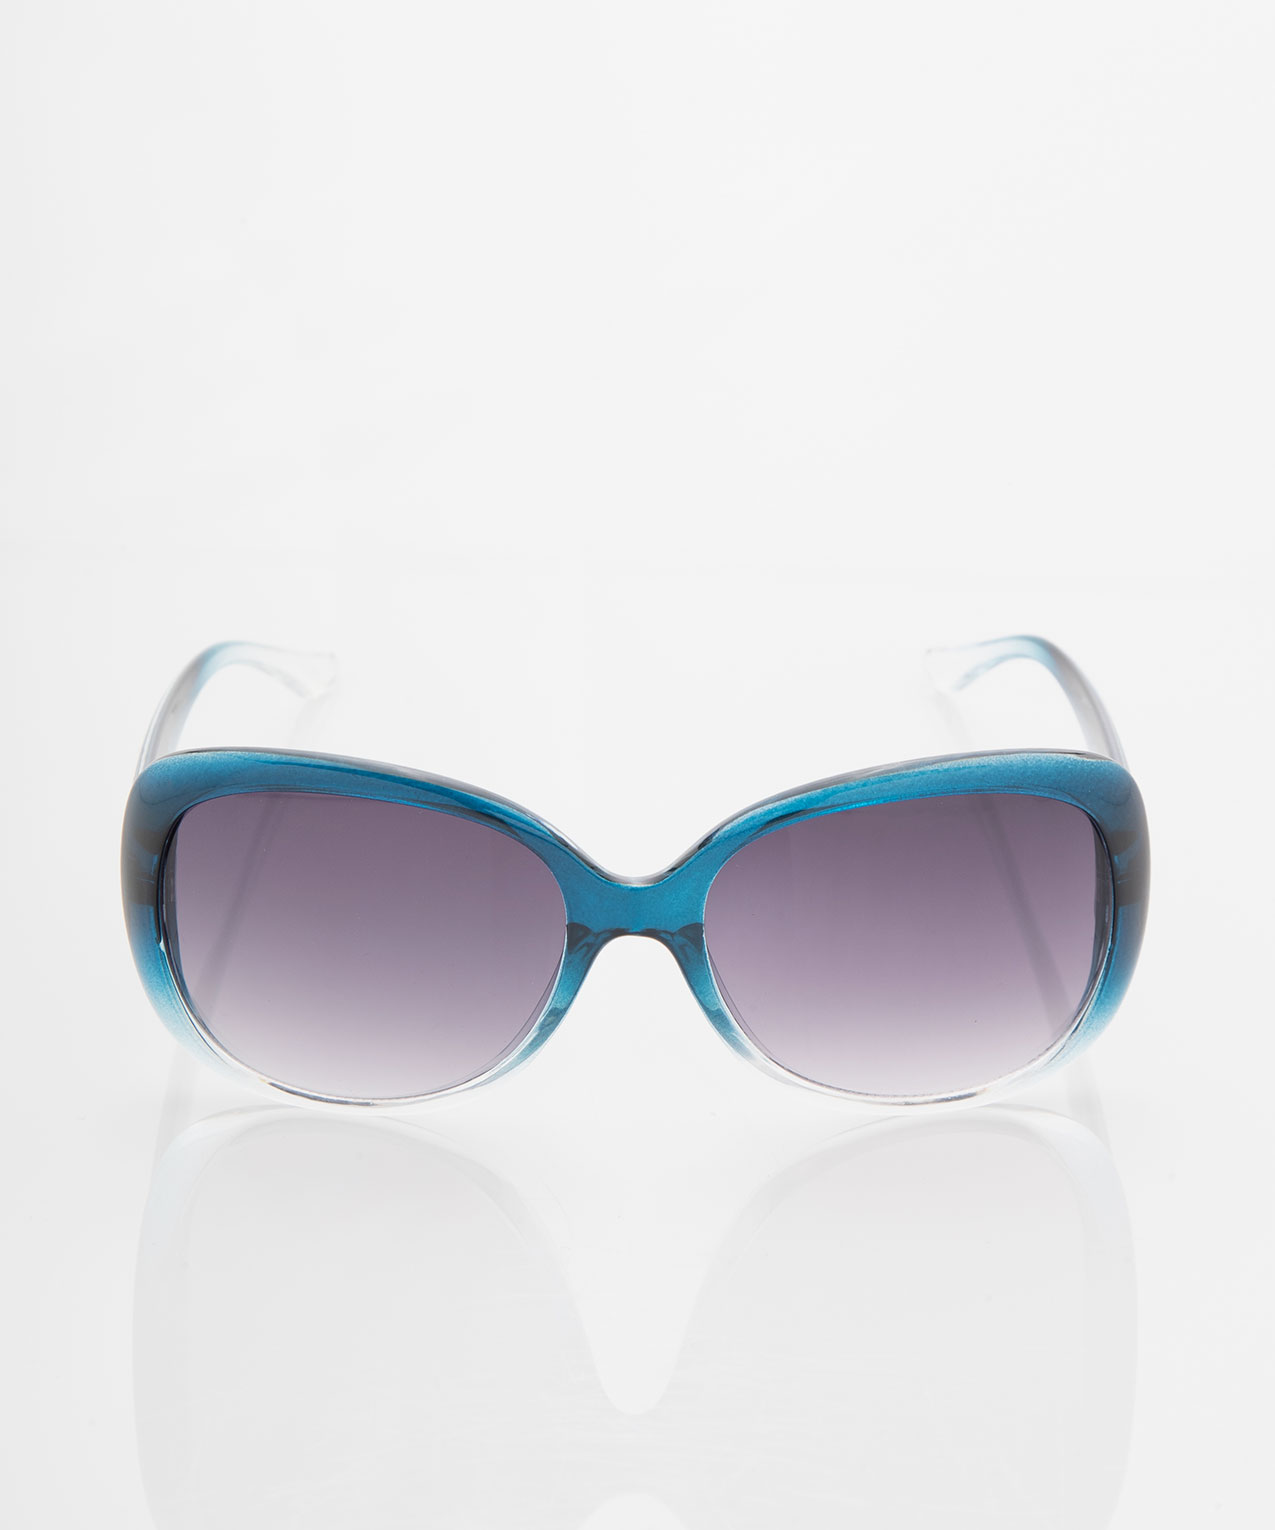 Ombre Square Frame Sunglasses, Midnight Teal, hi-res